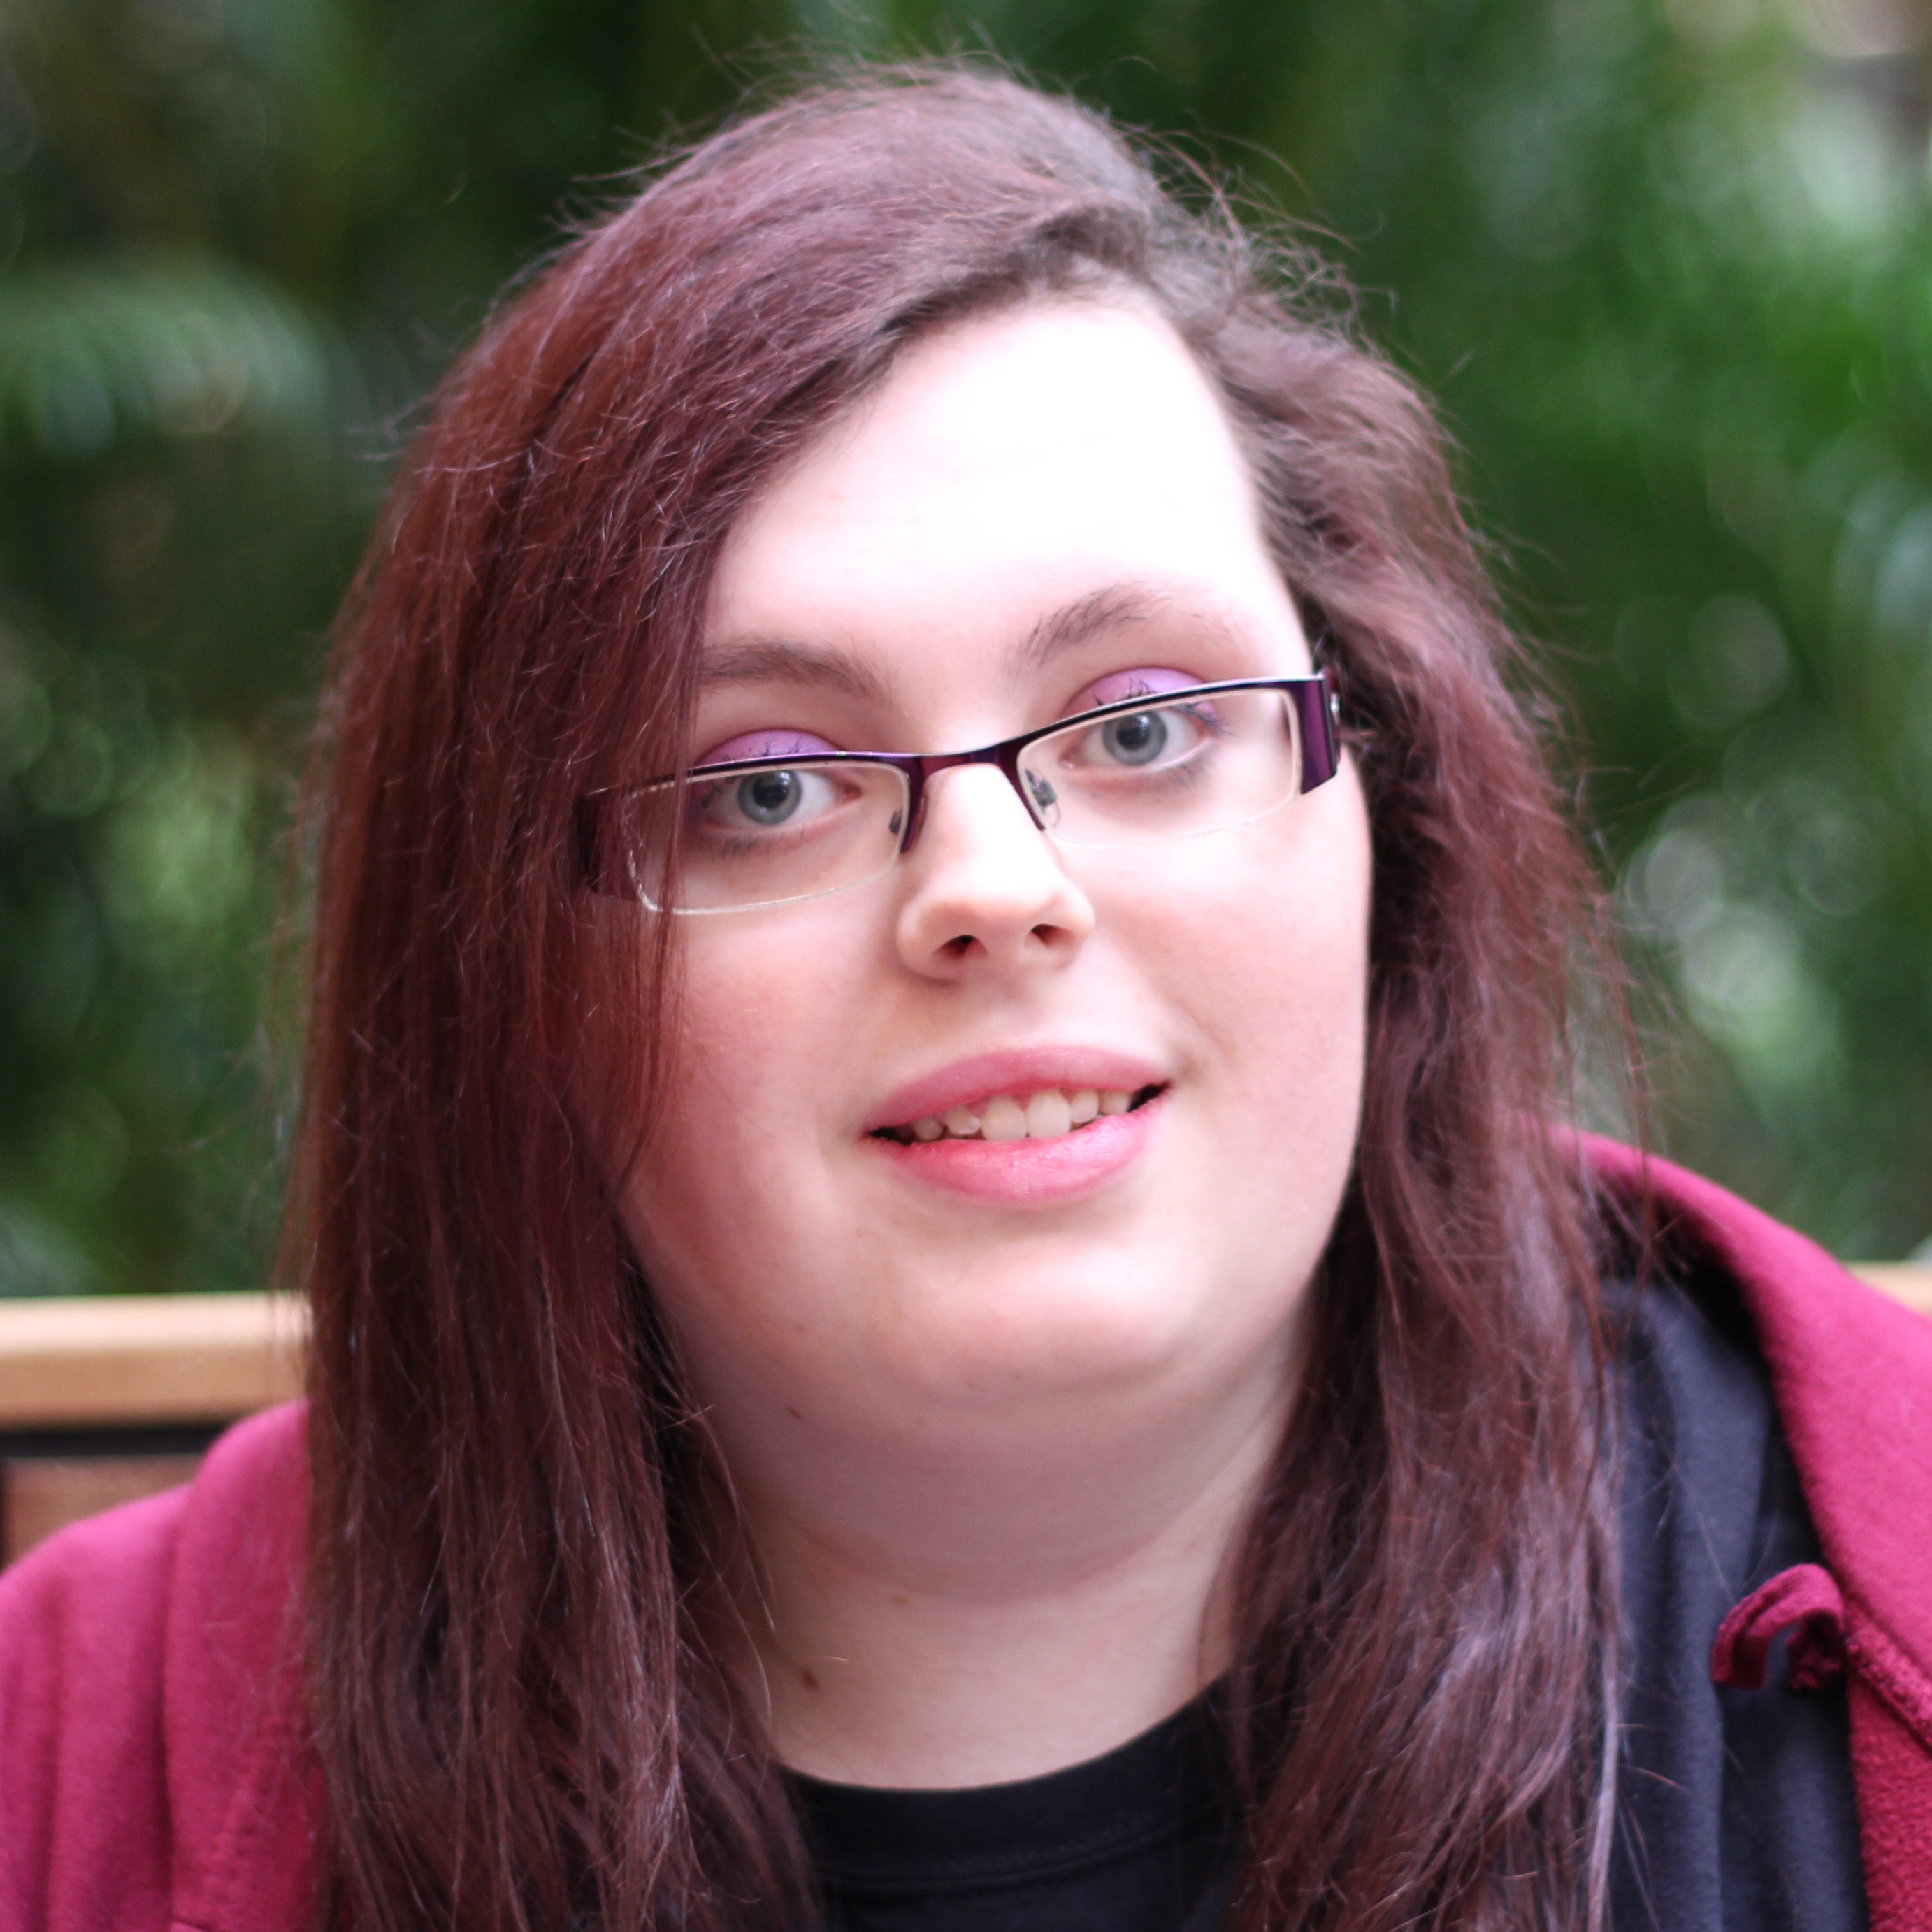 https://www.essexstudent.com/pageassets/disabledstudentsnetwork/Disabilities-Louisa-Cropped.jpg